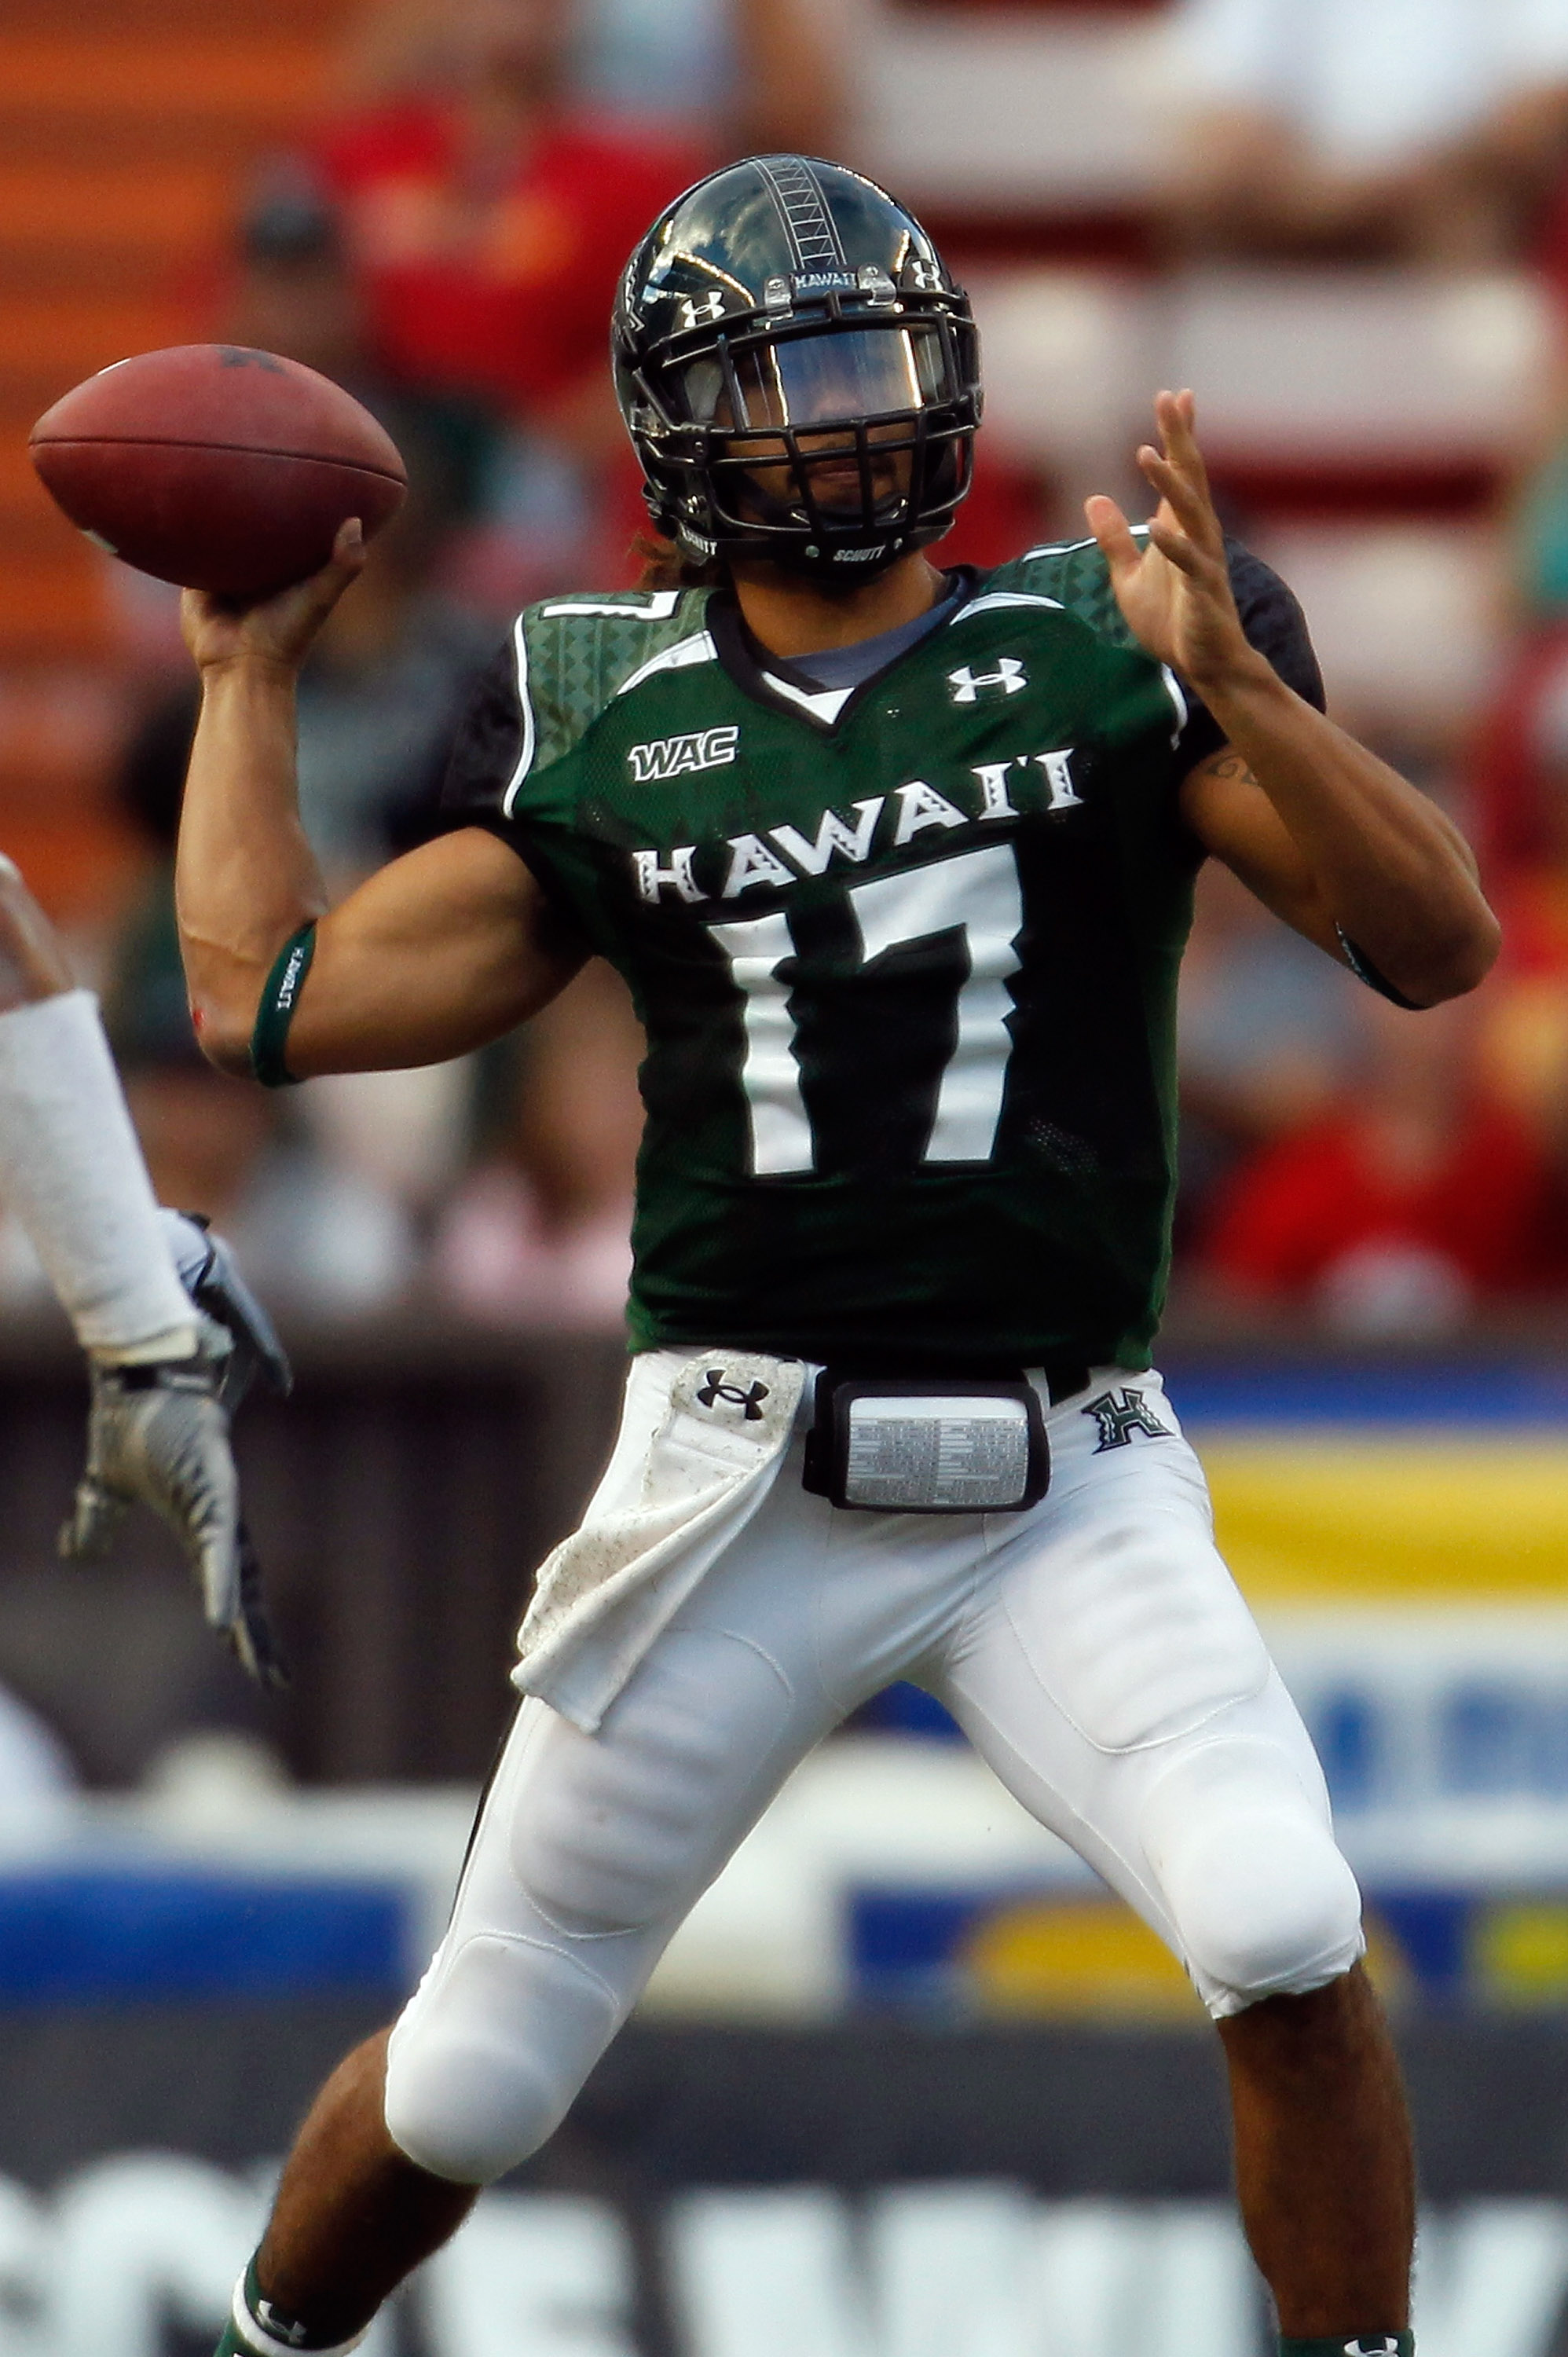 HONOLULU - SEPTEMBER 2:  Quarterback Bryant Moniz #17 of the University of Hawaii Warriors makes a pass against the University of Southern California Trojans during first half action at Aloha Stadium September 2, 2010 in Honolulu, Hawaii. (Photo by Kent N